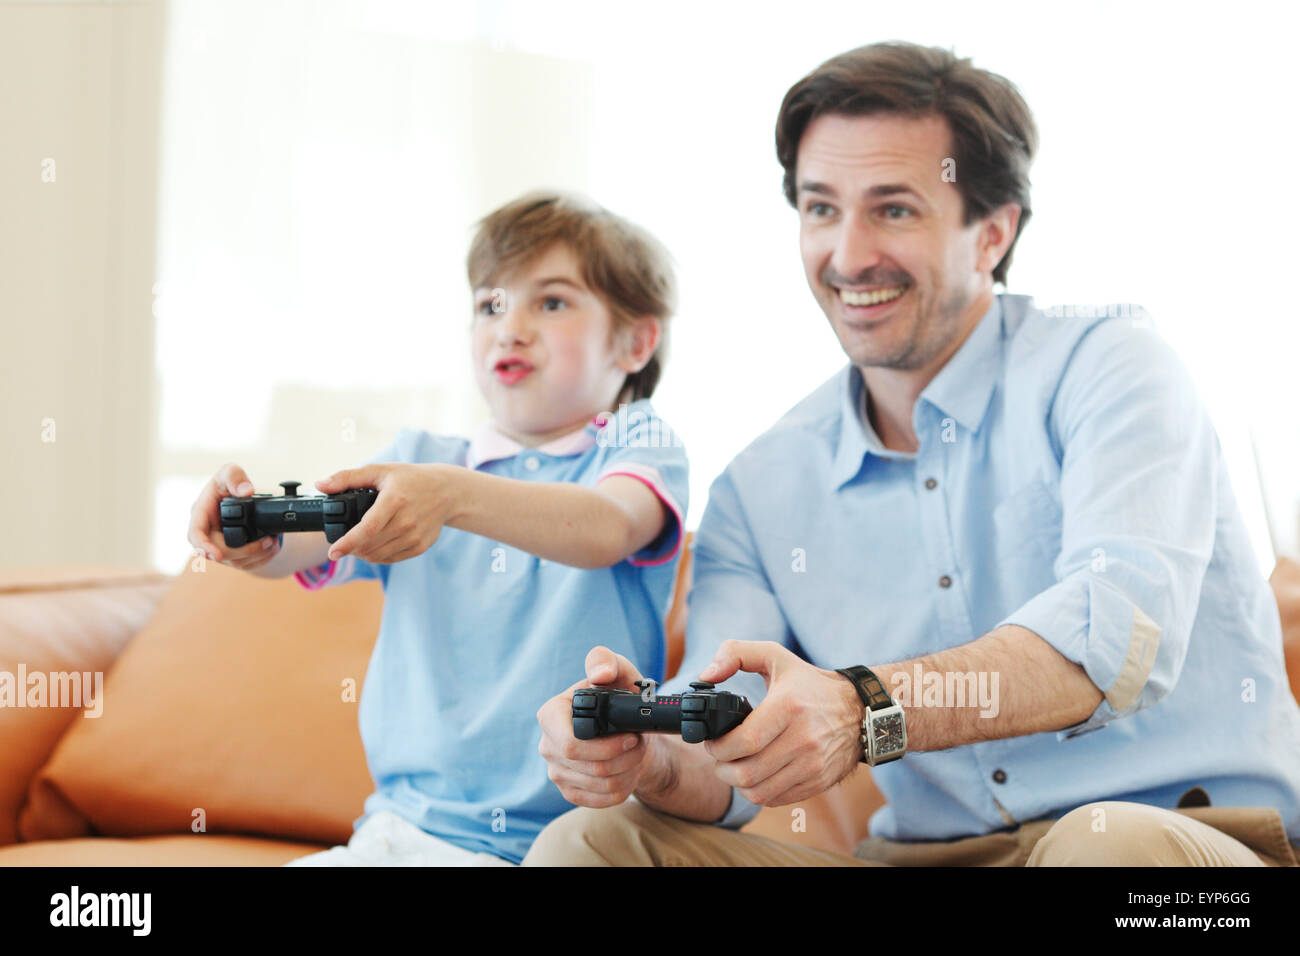 father and son play video game - Stock Image